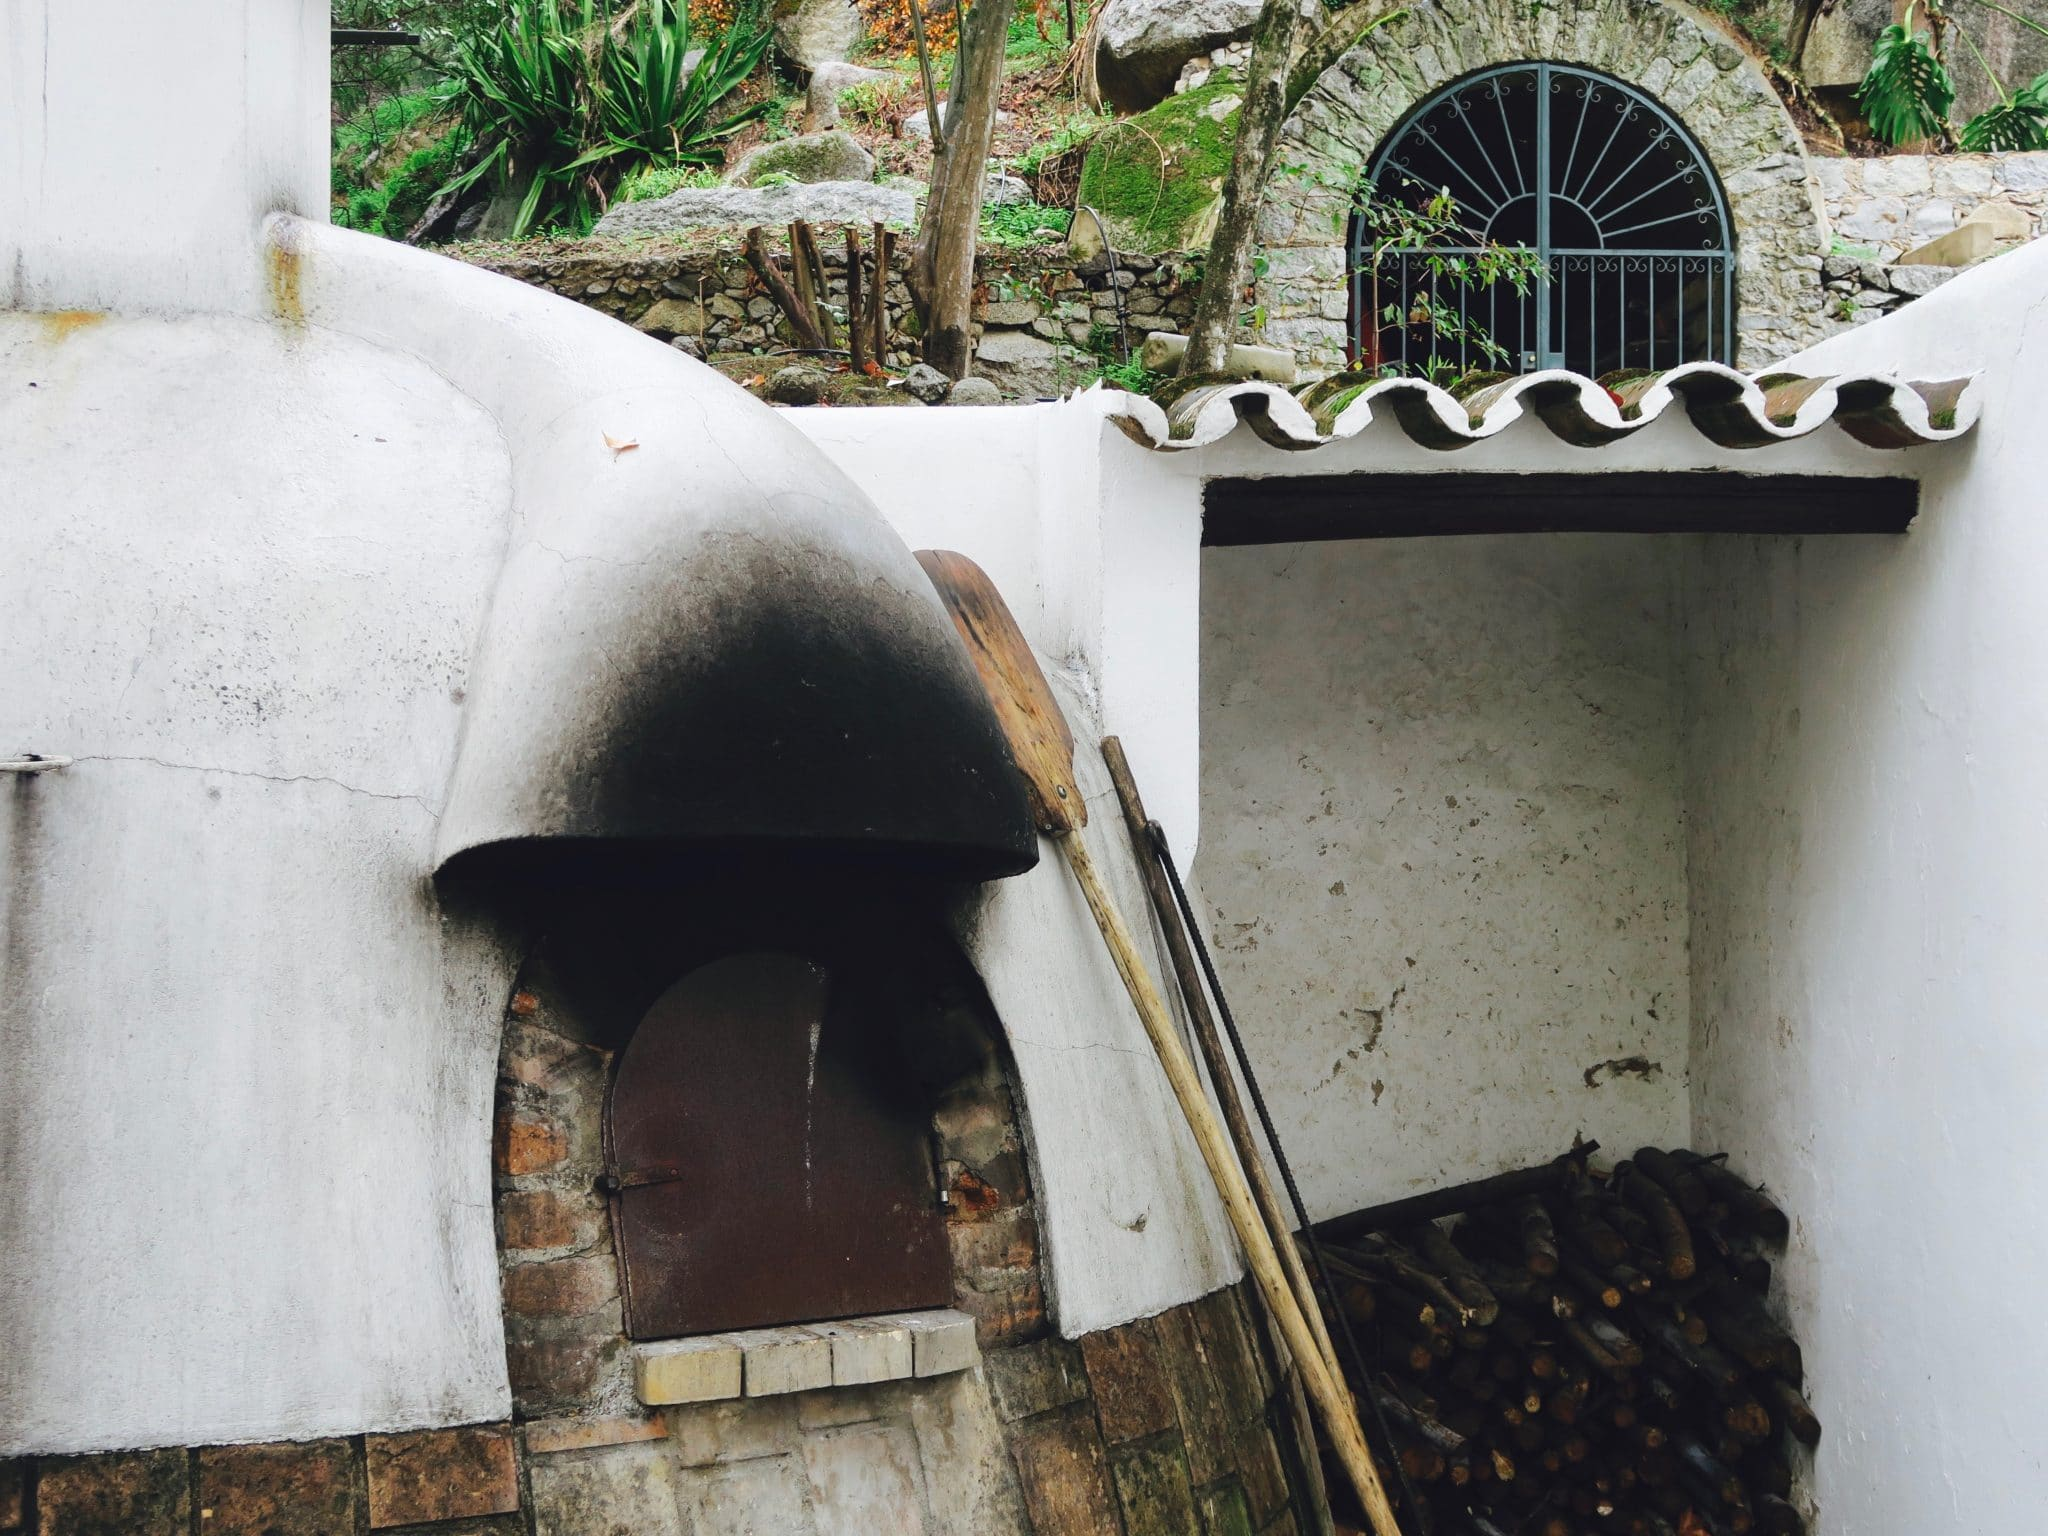 Community oven in Monchique